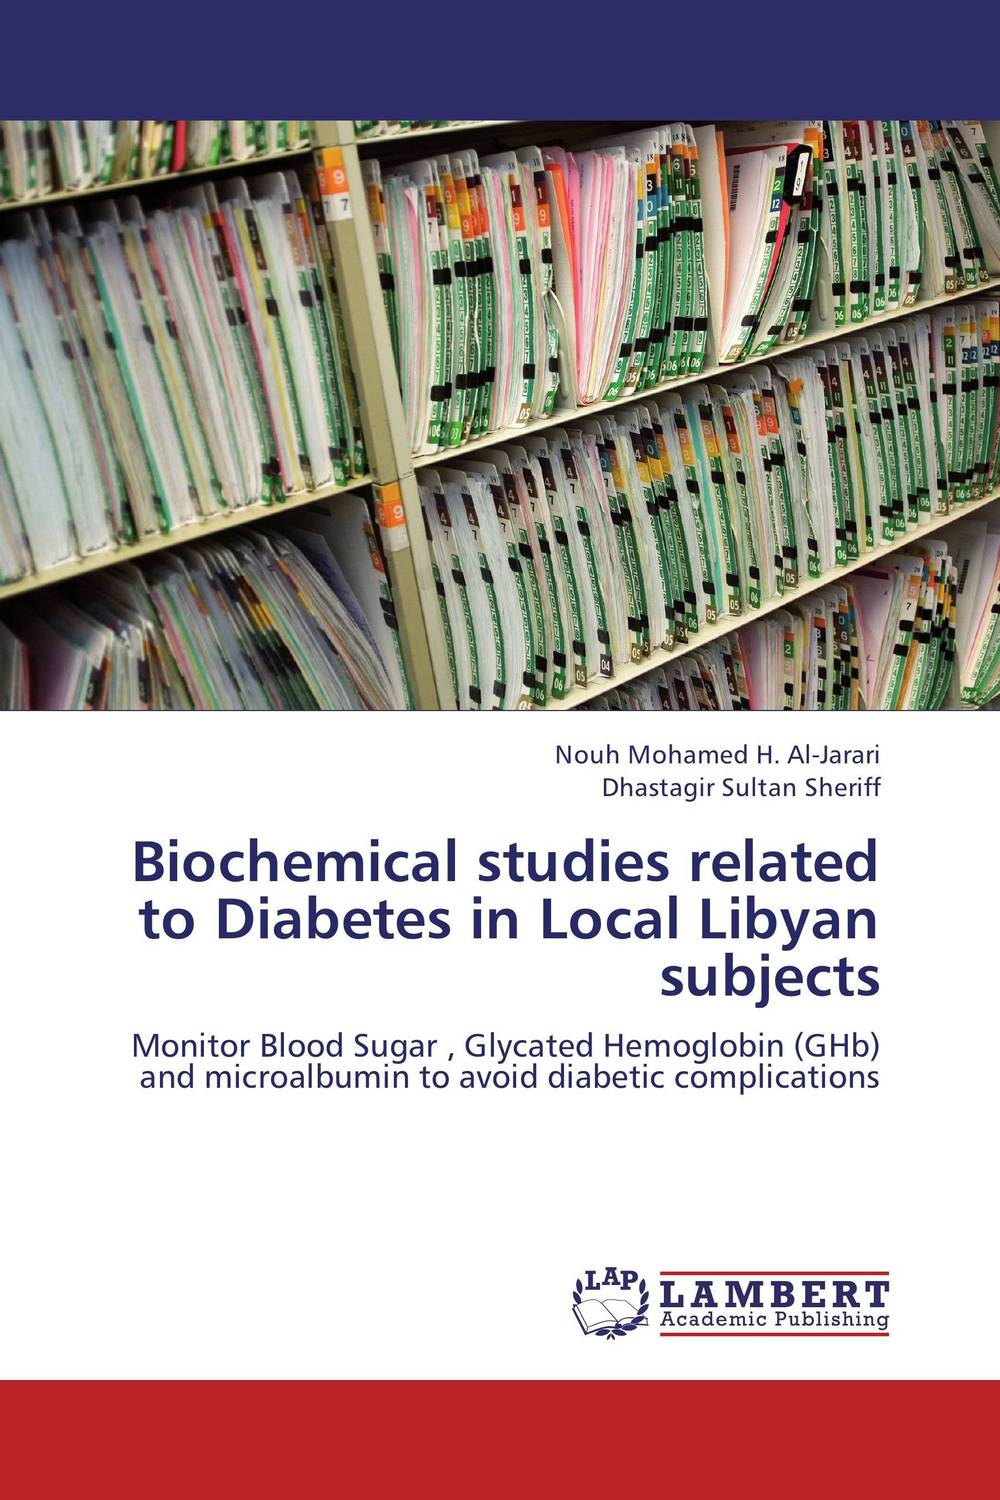 Biochemical studies related to Diabetes in Local Libyan subjects